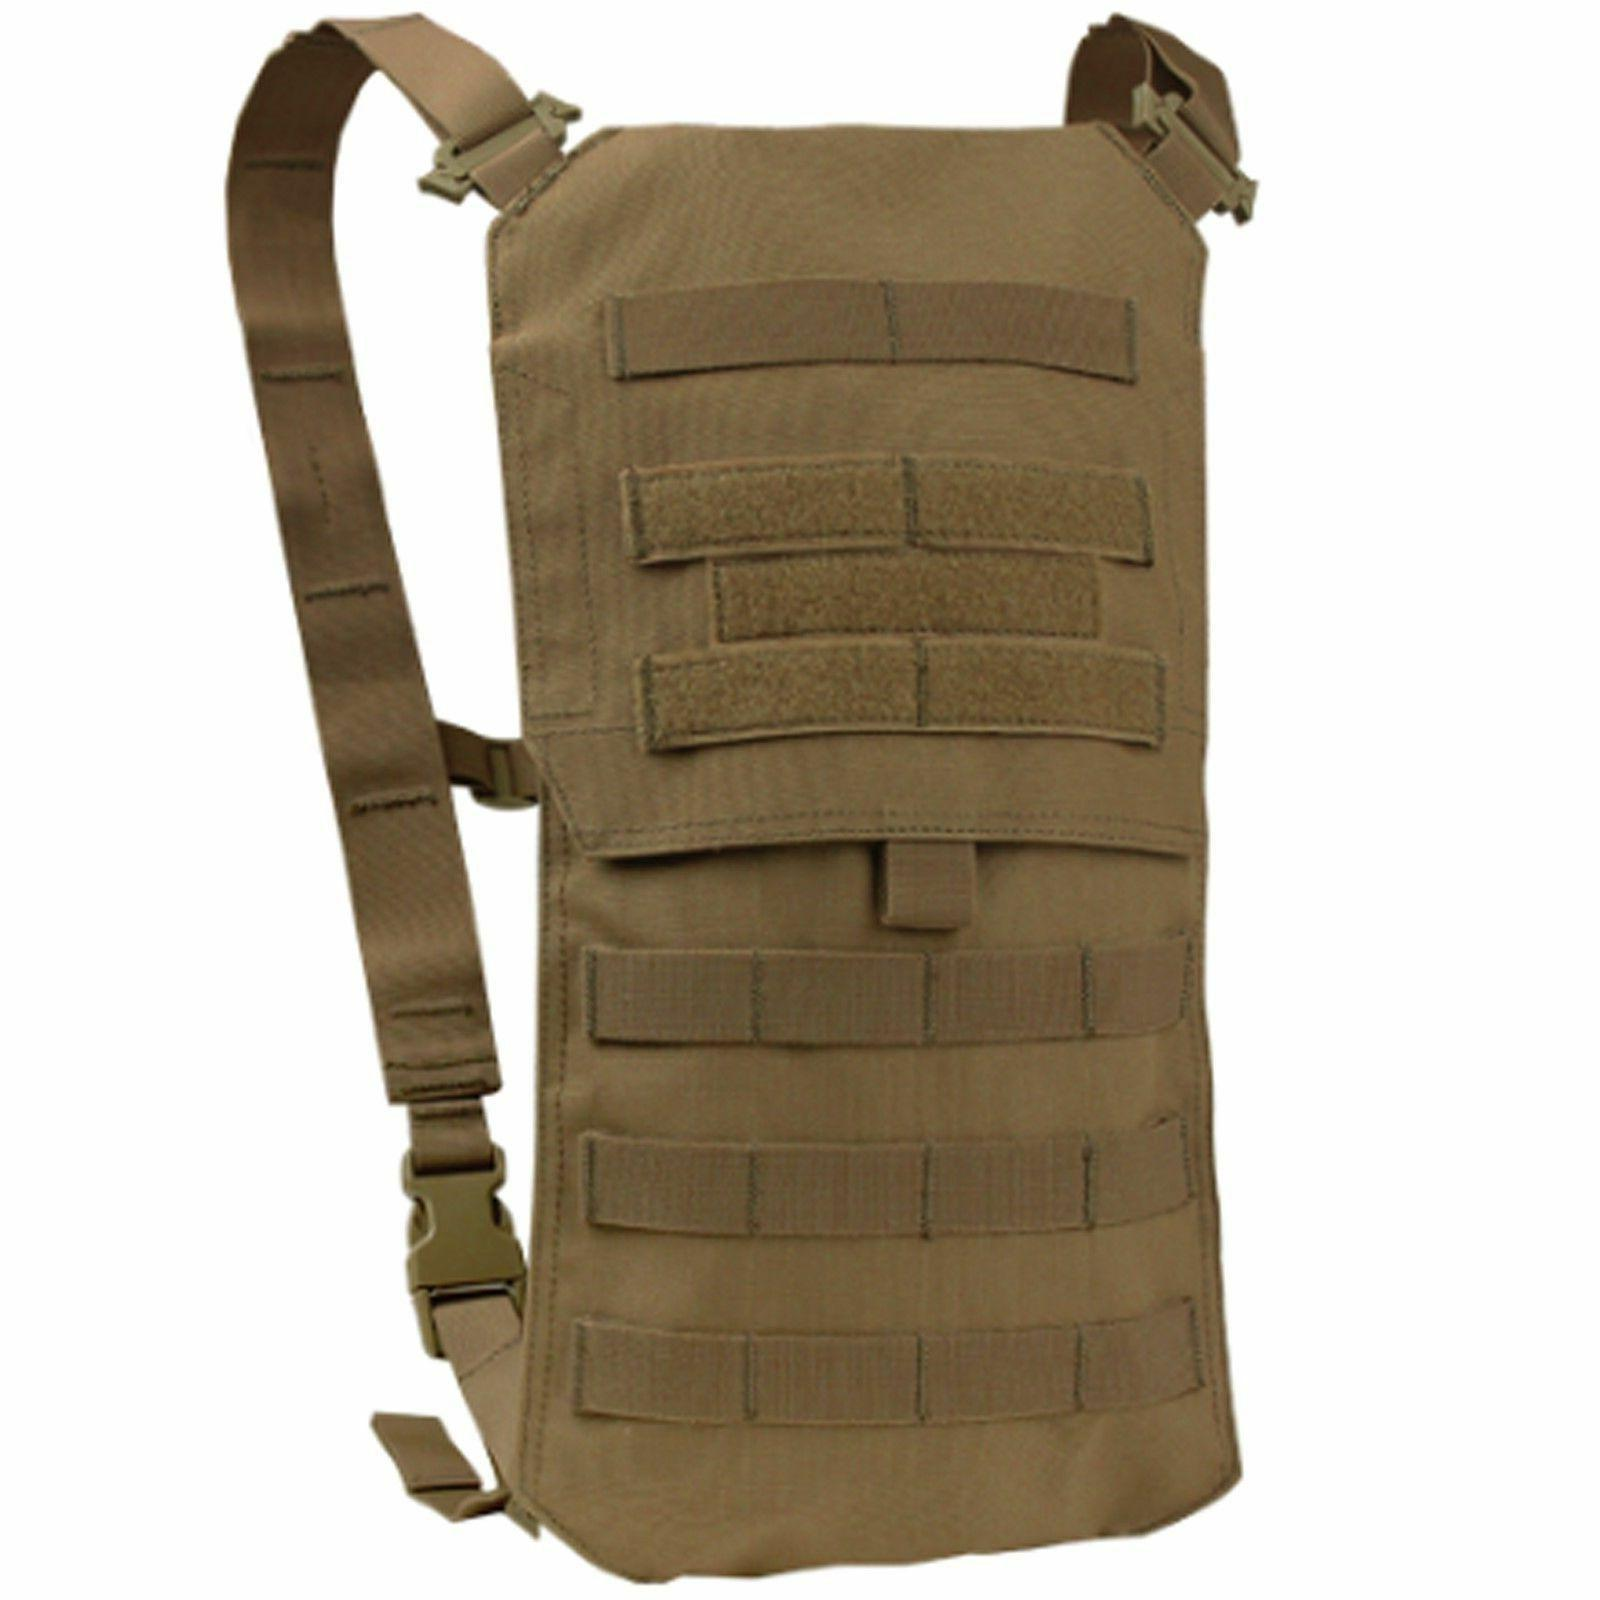 Condor HCB3 MOLLE Insulated Oasis Pack 2.5L